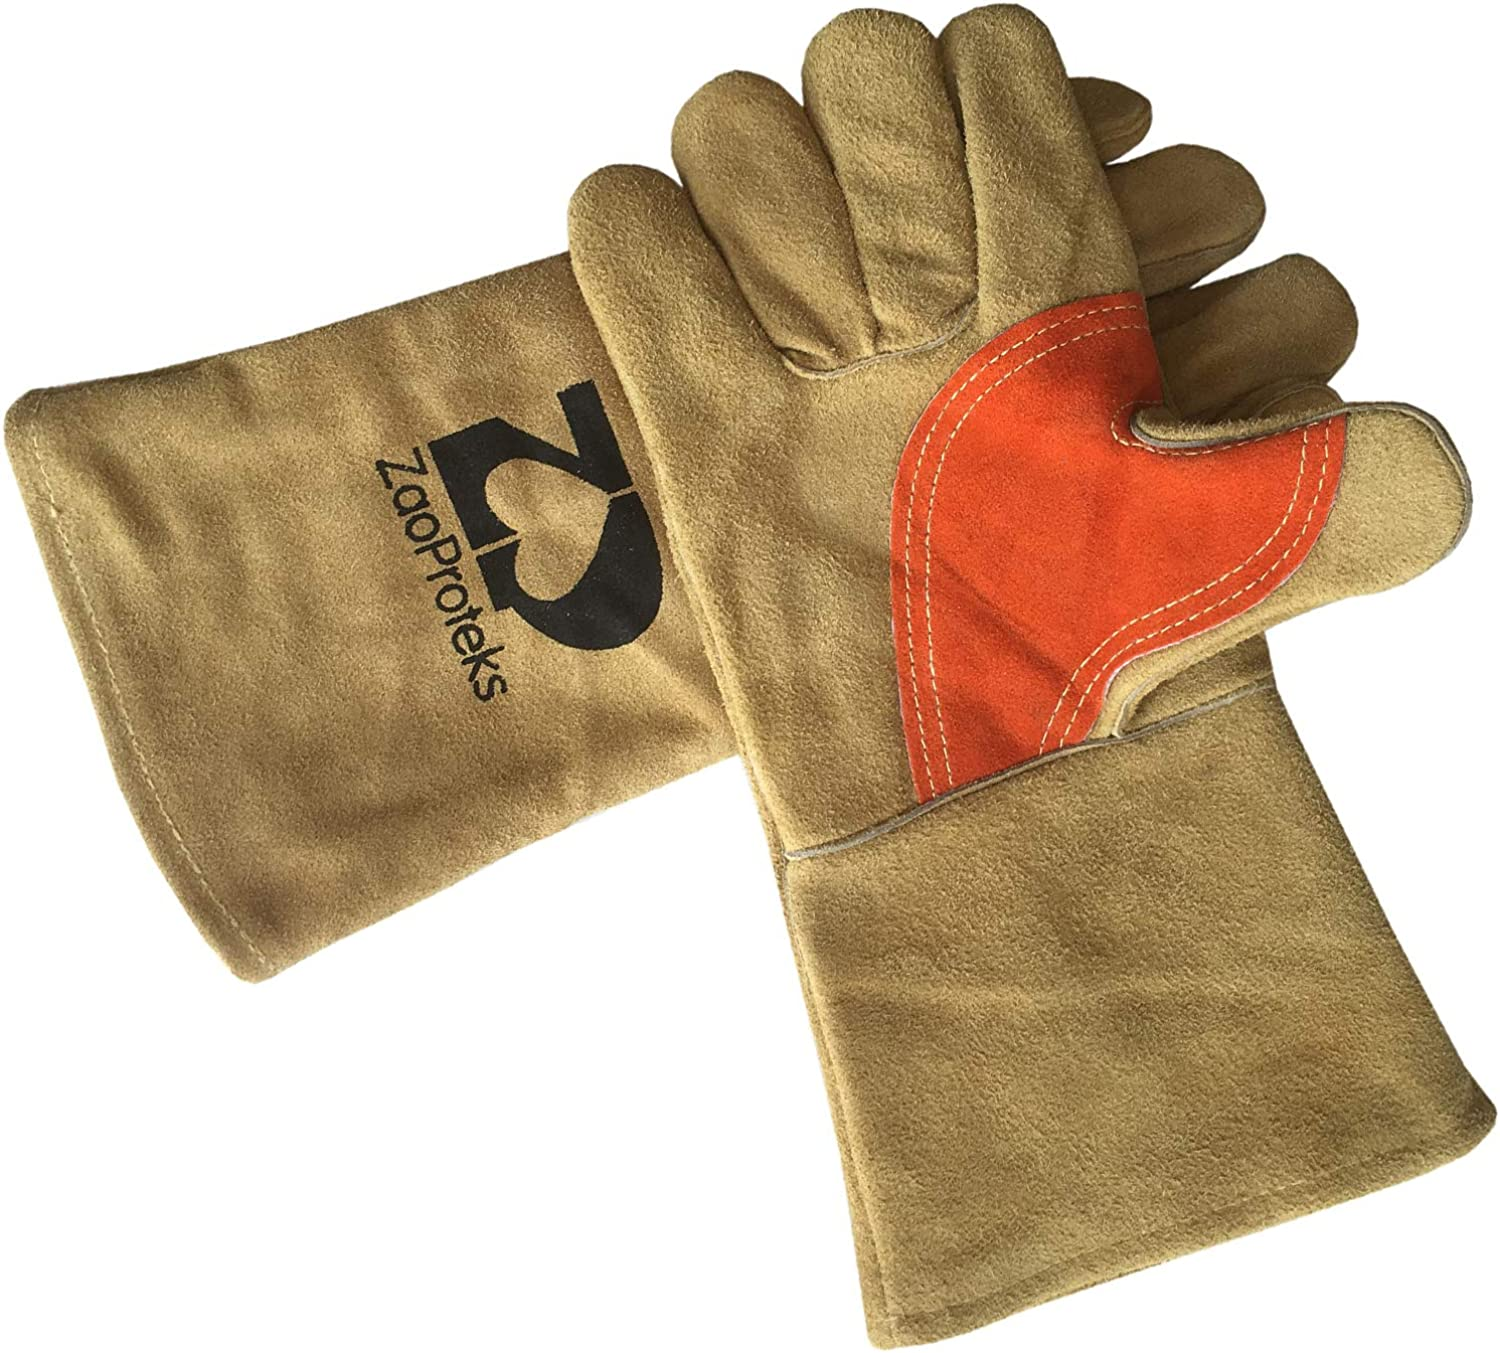 ZP1701 Cowhide Leather Heat Welding Gloves Ranking TOP7 New color Resistant